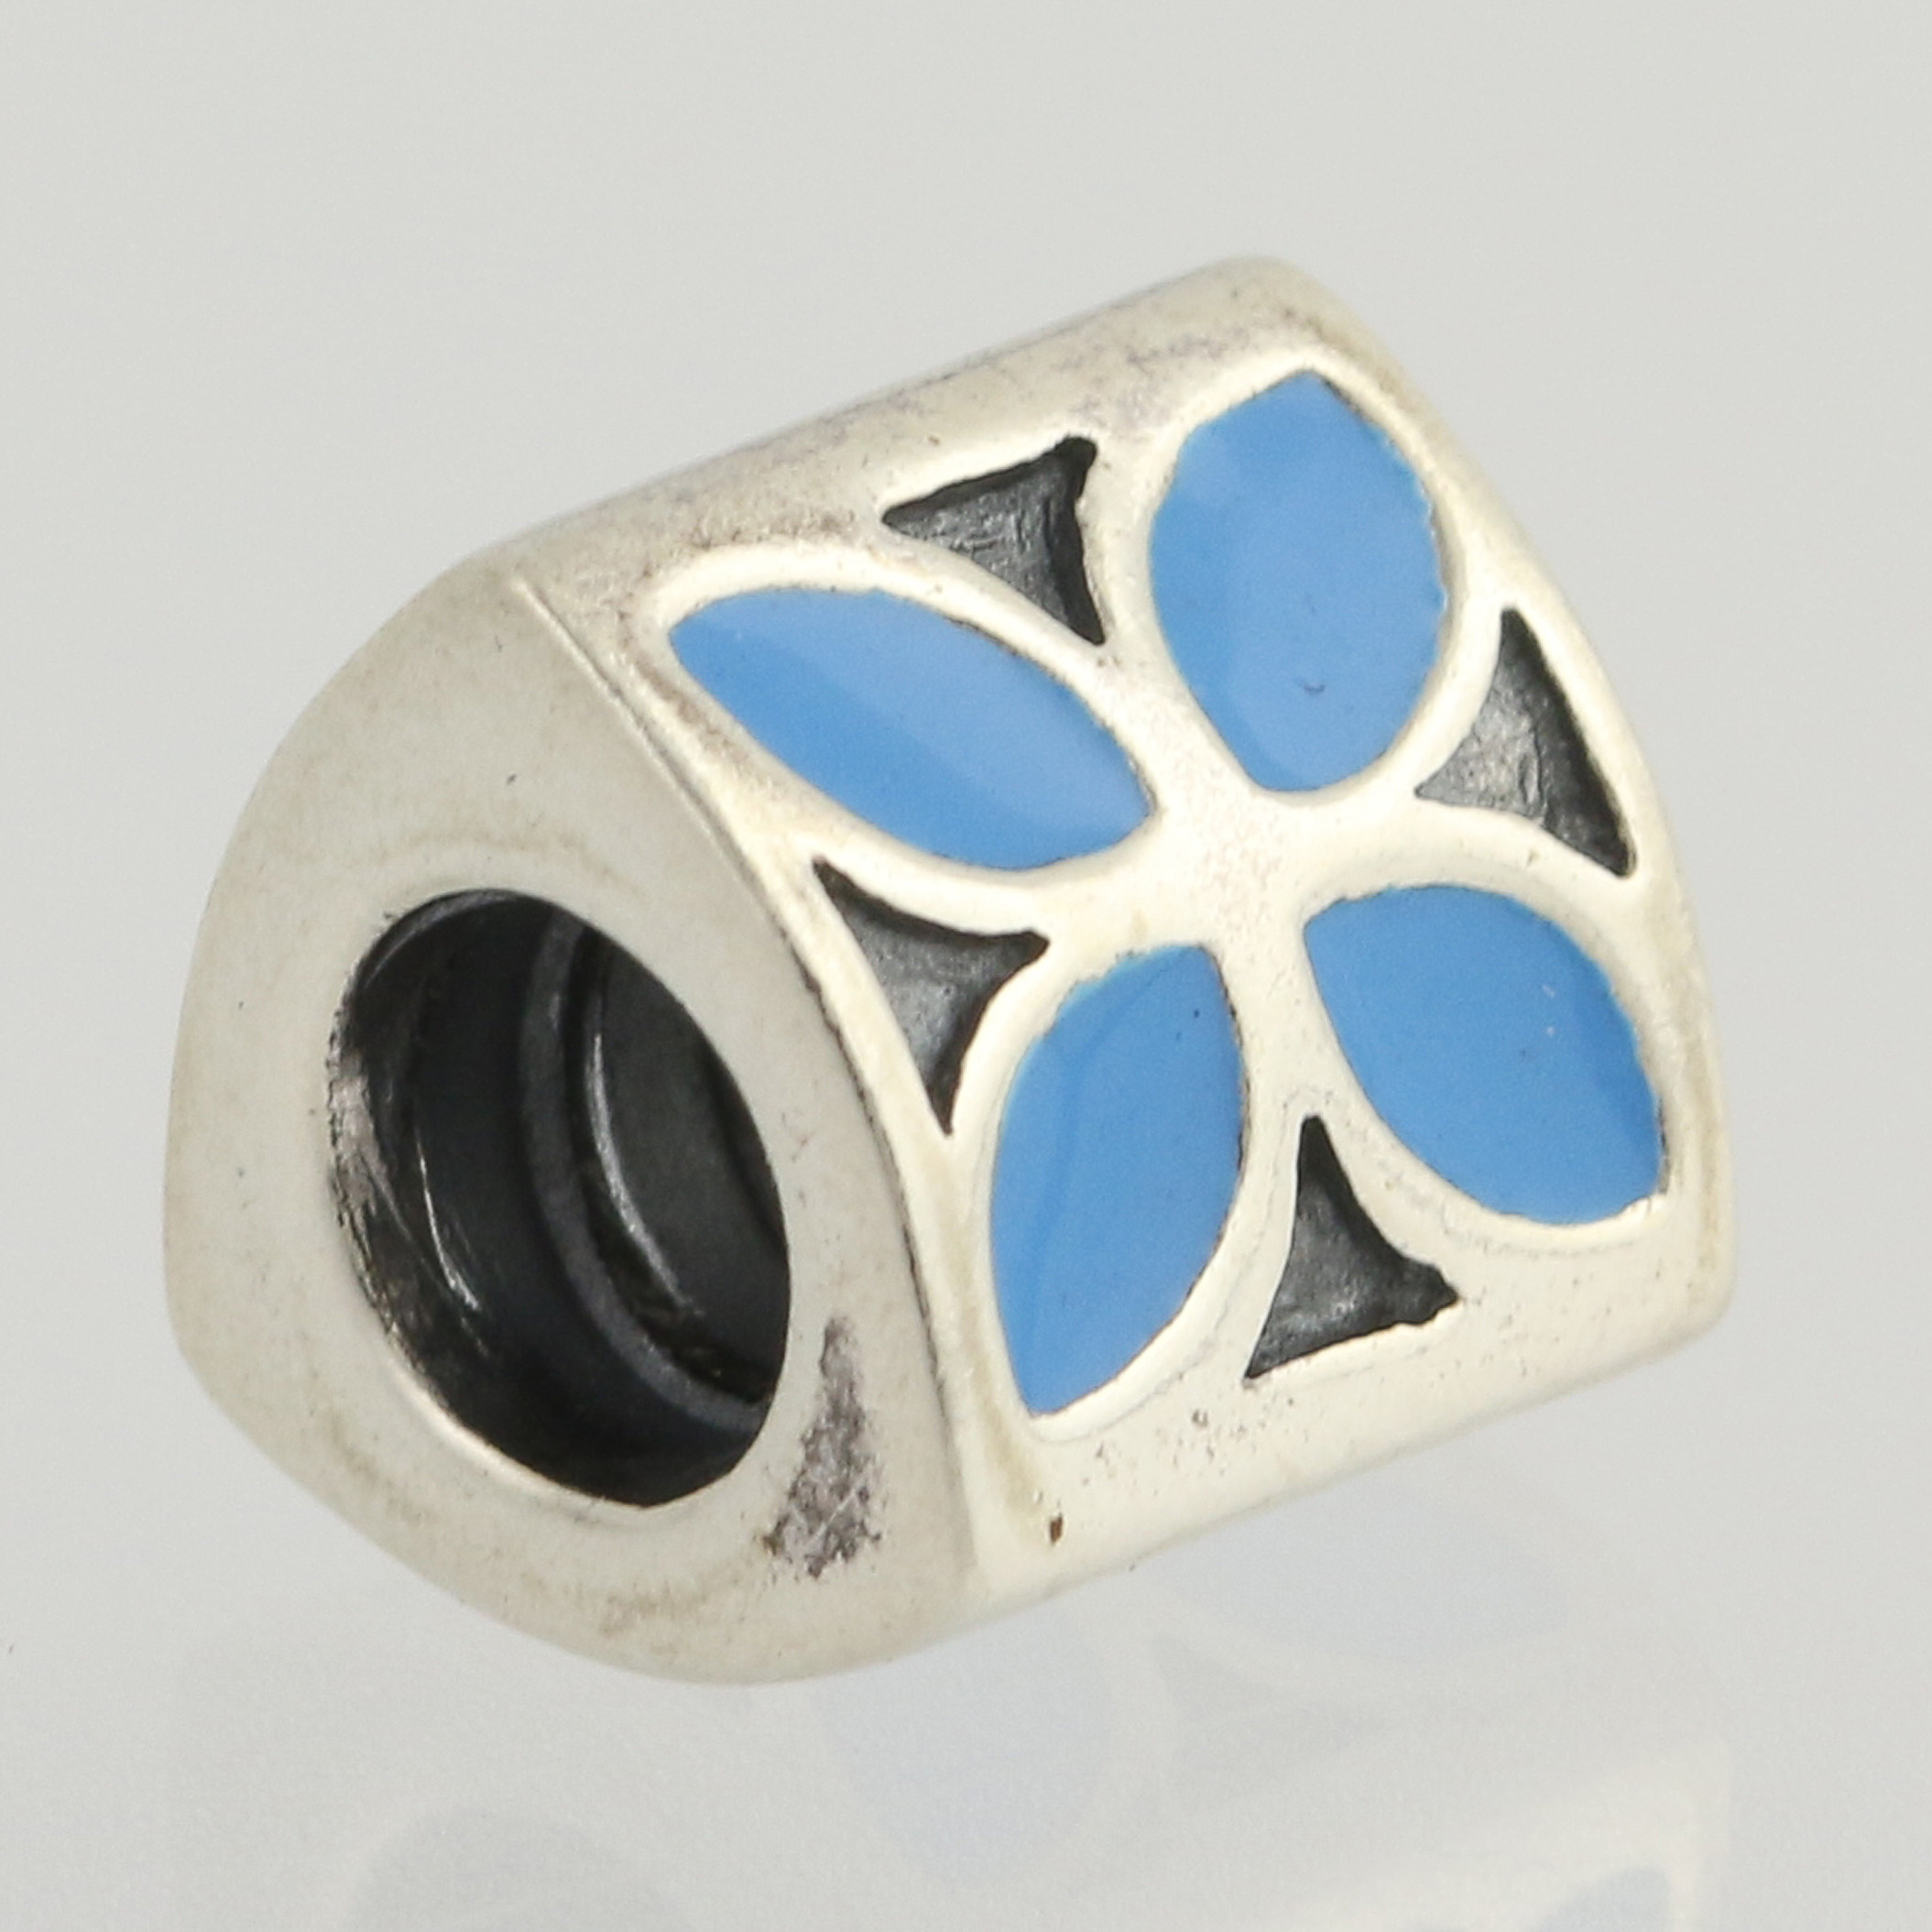 New authentic pandora blue flower charm sterling silver enamel click thumbnails to enlarge izmirmasajfo